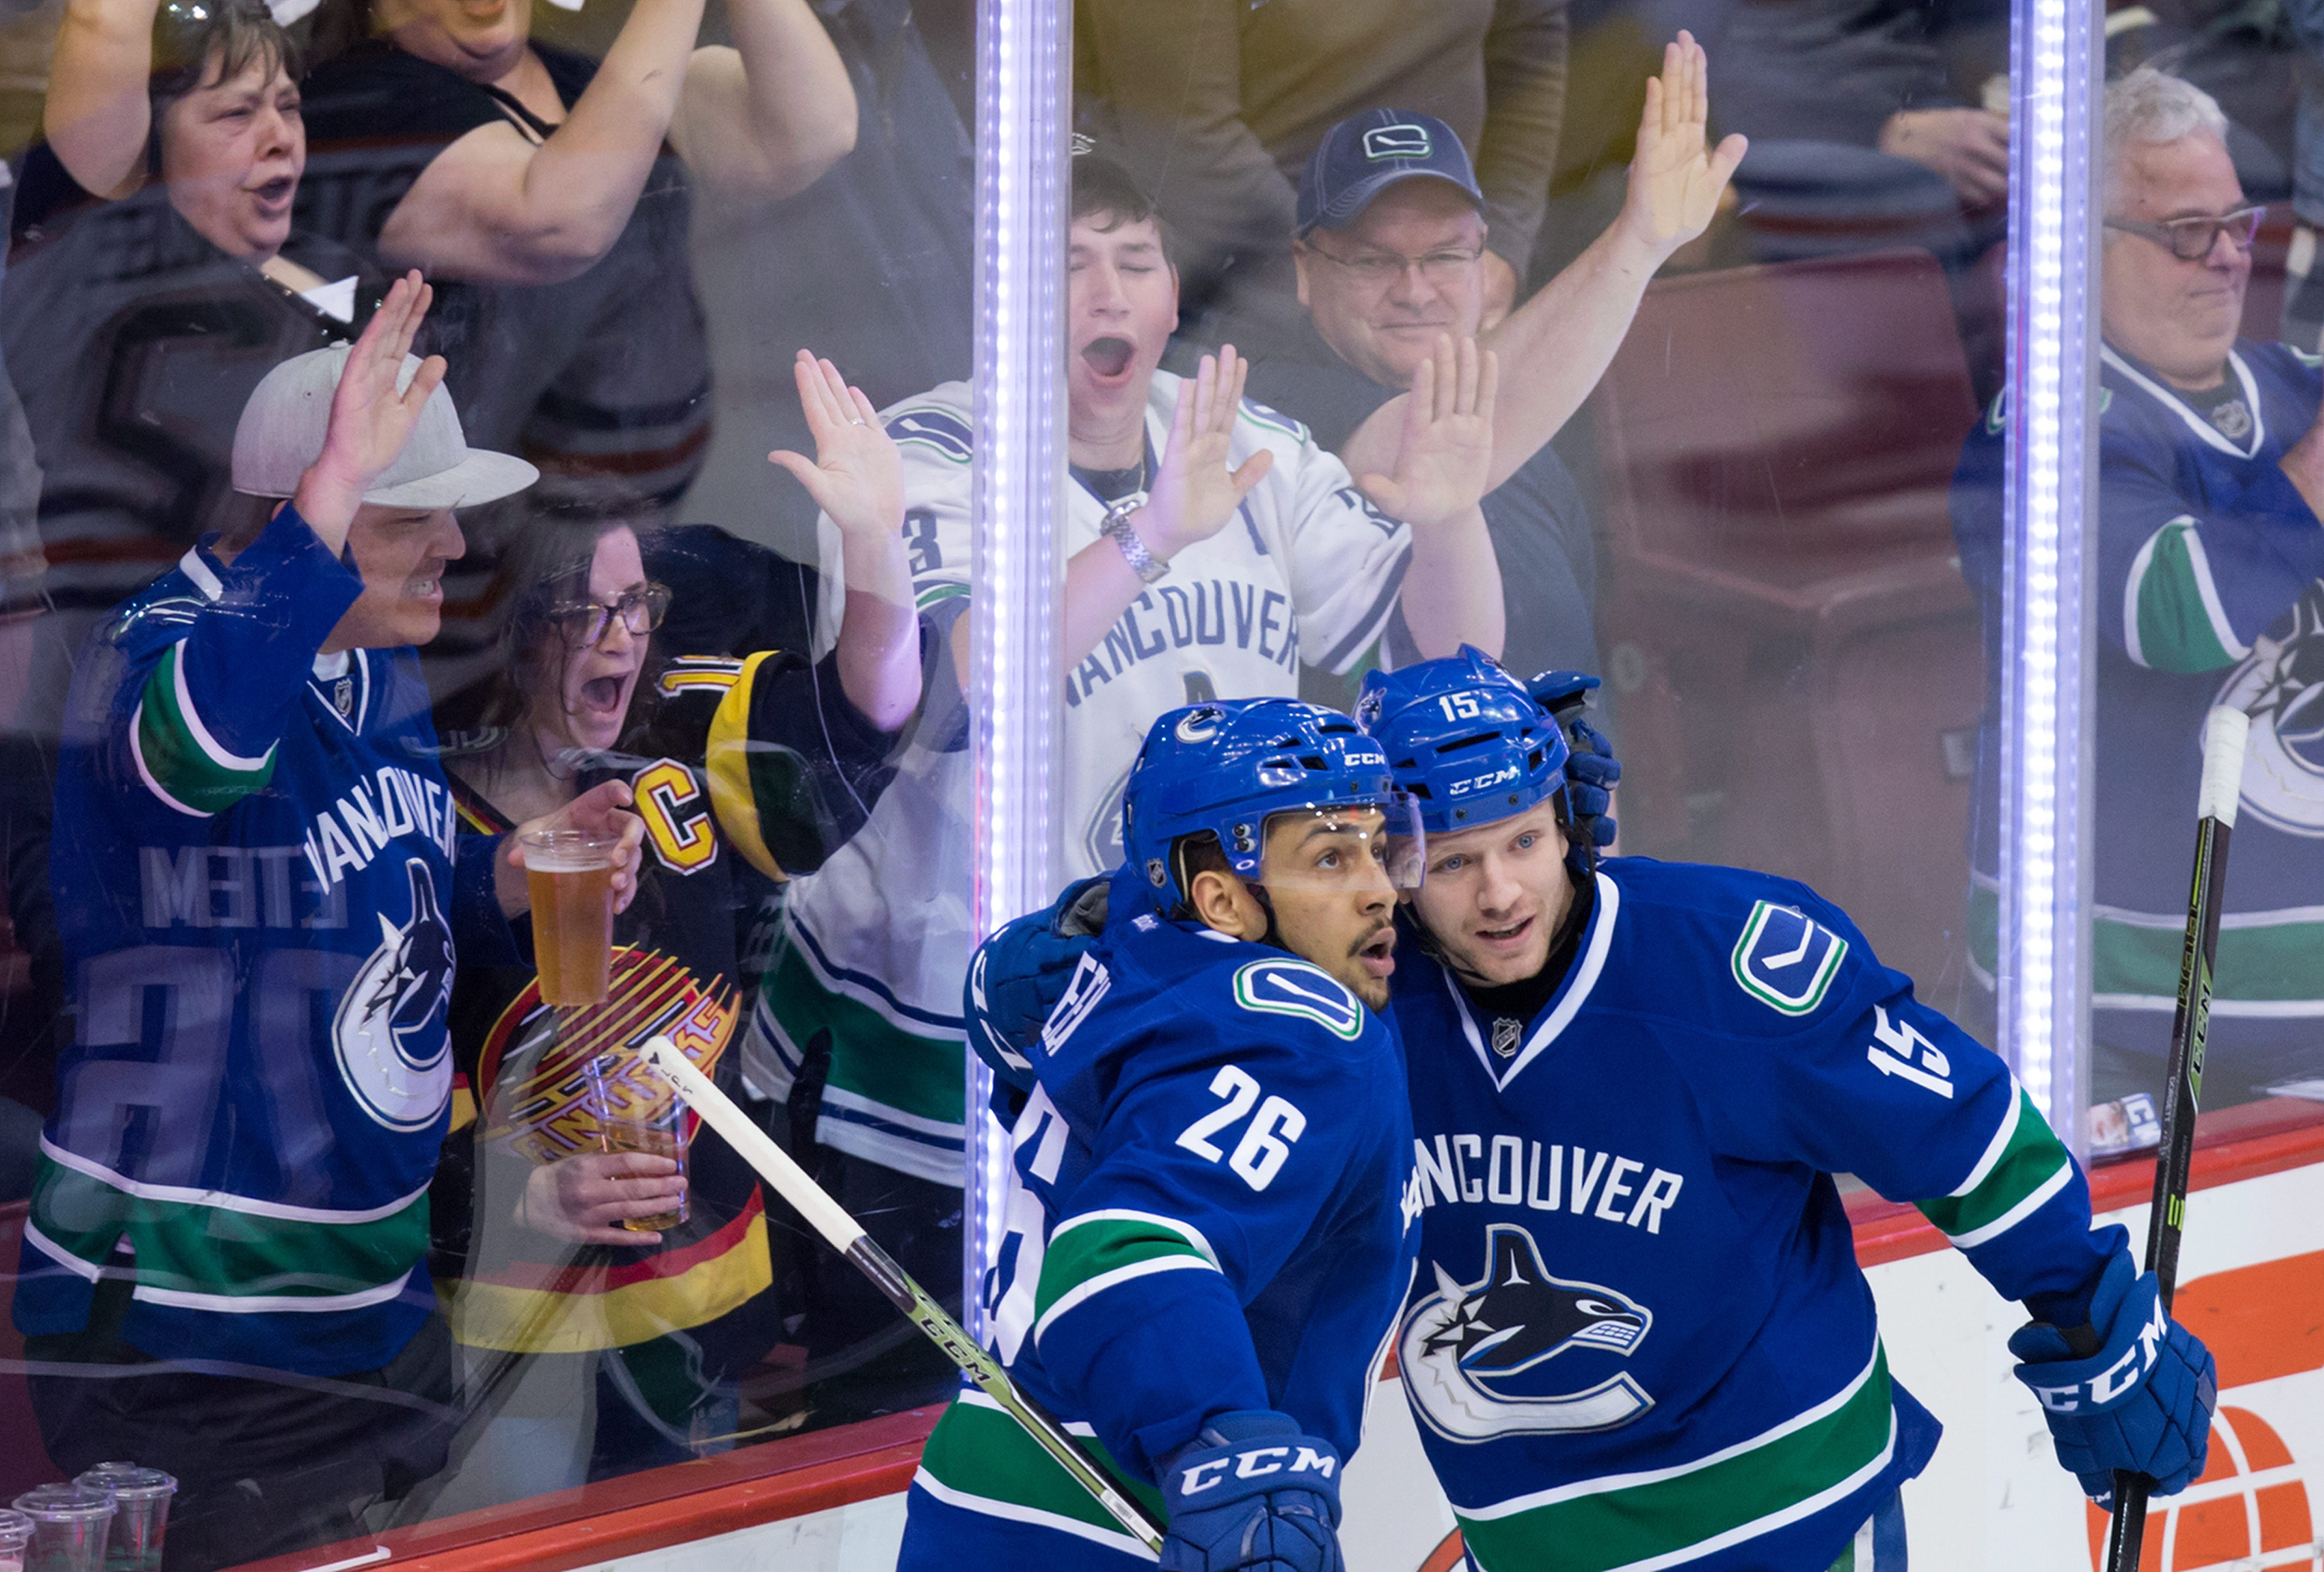 Vancouver Canucks' Emerson Etem, left, and Derek Dorsett celebrate item's goal against the Edmonton Oilers during the third period of an NHL hockey game Saturday, April 9, 2016, in Vancouver, British Columbia. (Darryl Dyck/The Canadian Press via AP)